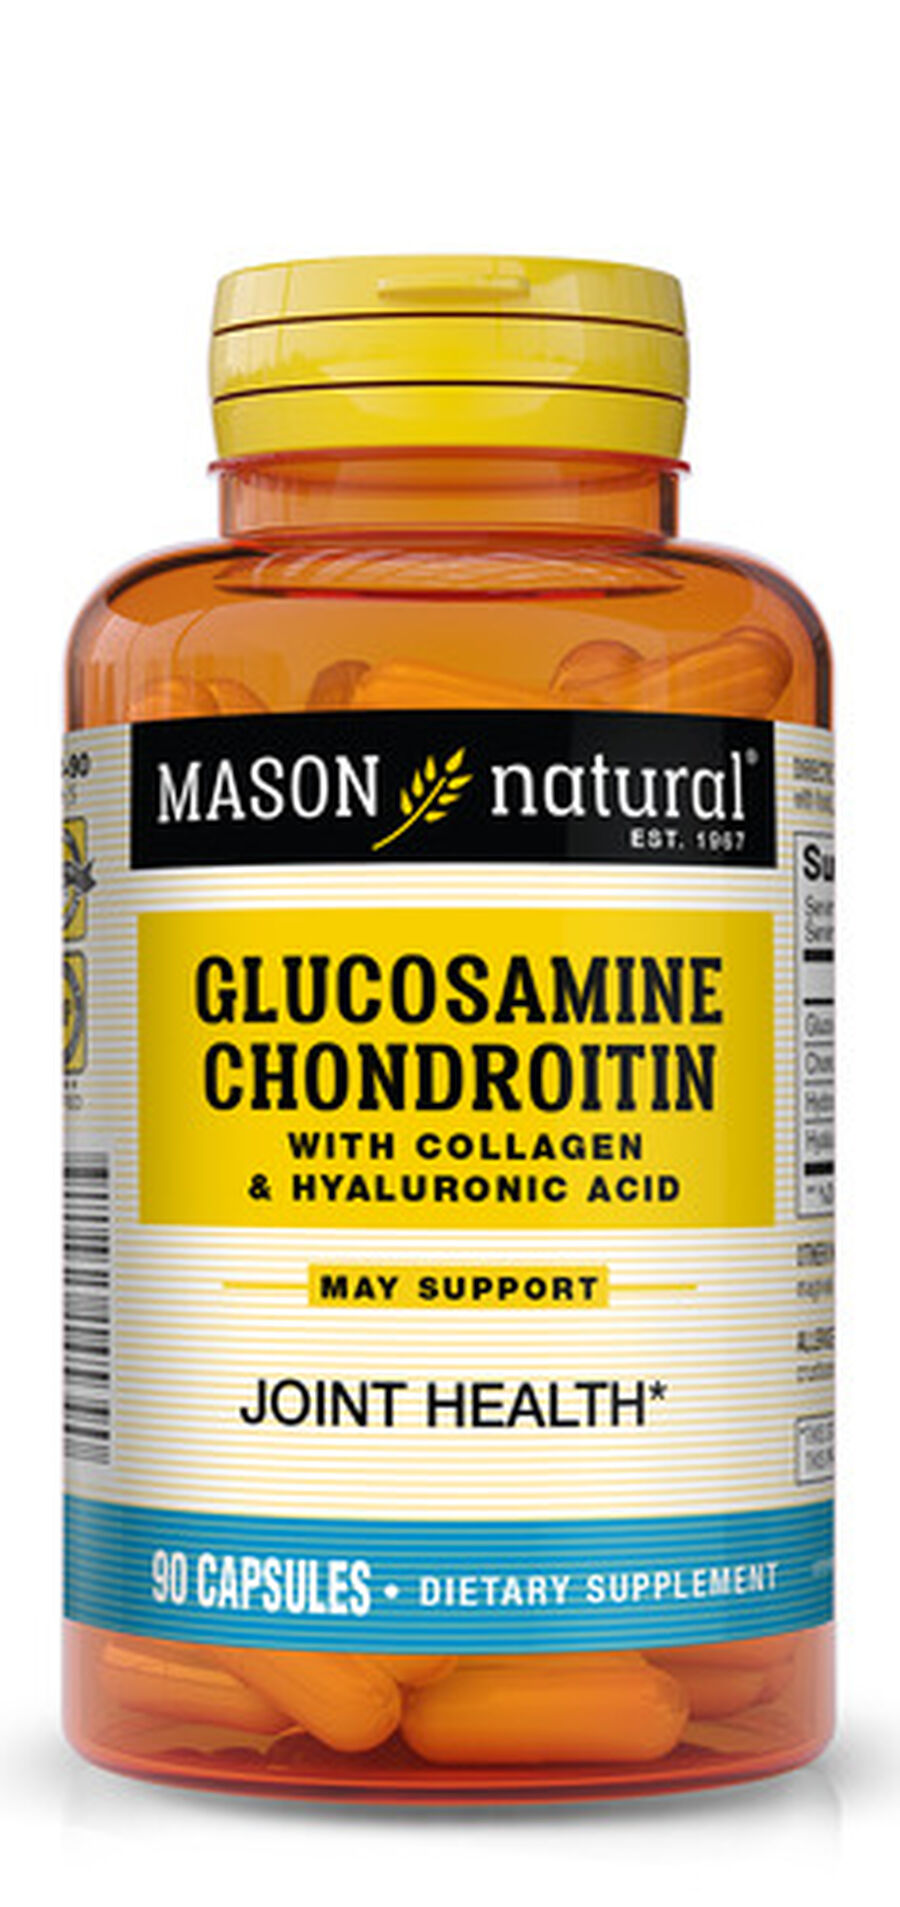 Mason Natural Glucosamine Chondroitin Advance with Collagen & Hyaluronic Acid, Capsules 90 ea, , large image number 0